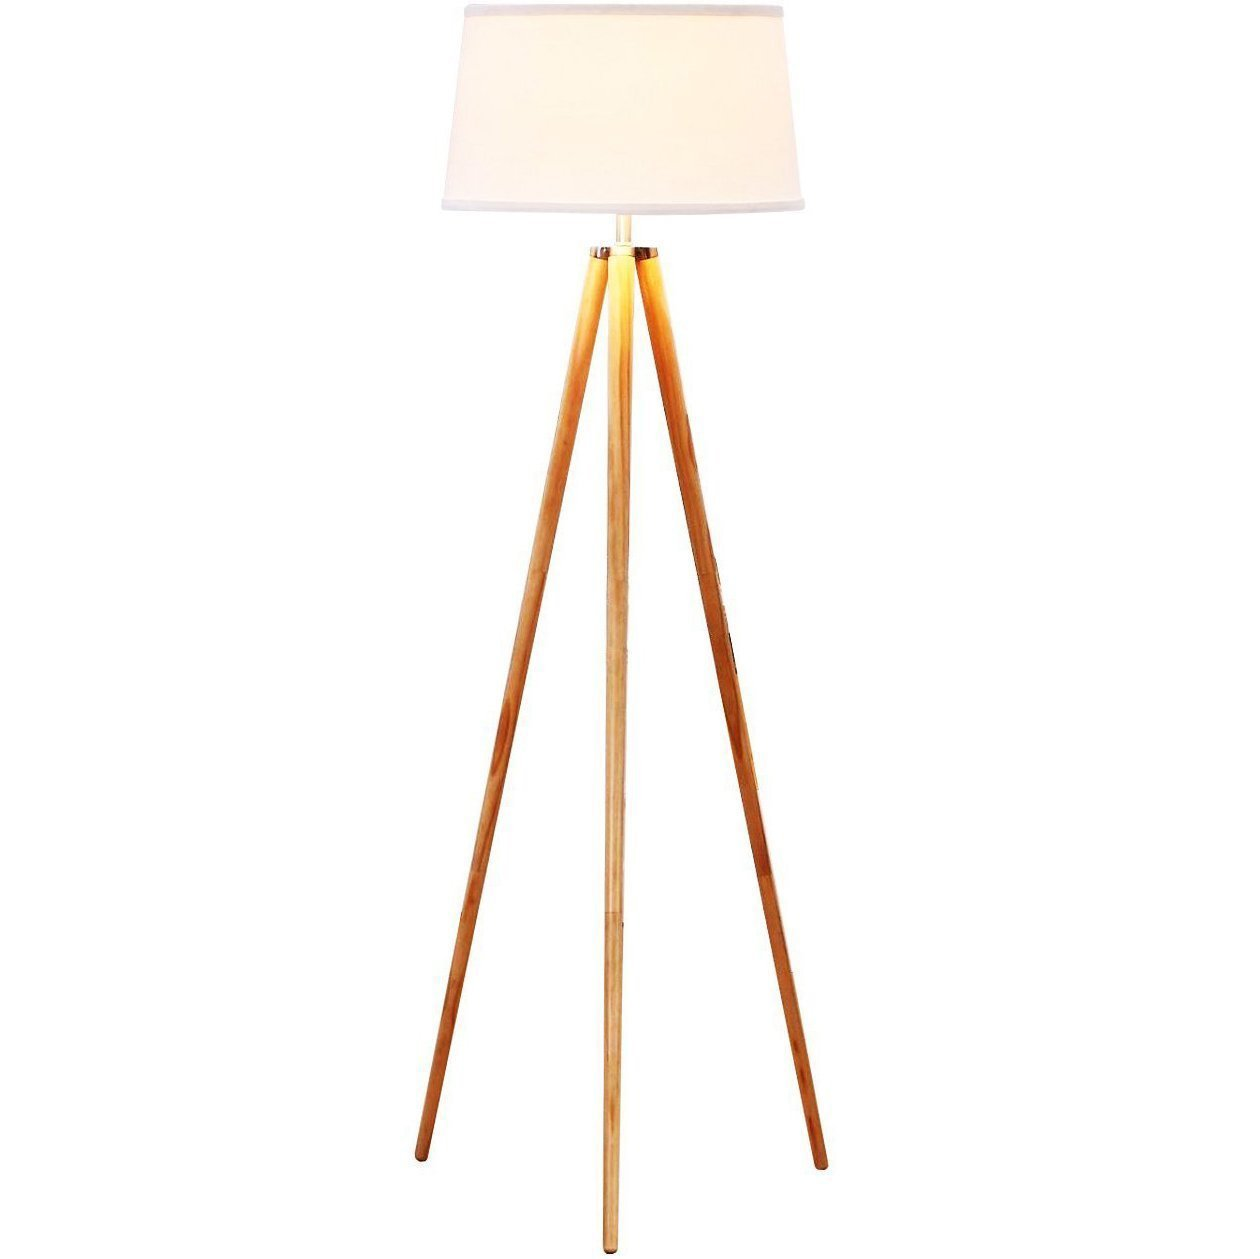 floor modern tall morespoons lamp gold antique hairpin nyc on ideas illumi base design under task and lamps